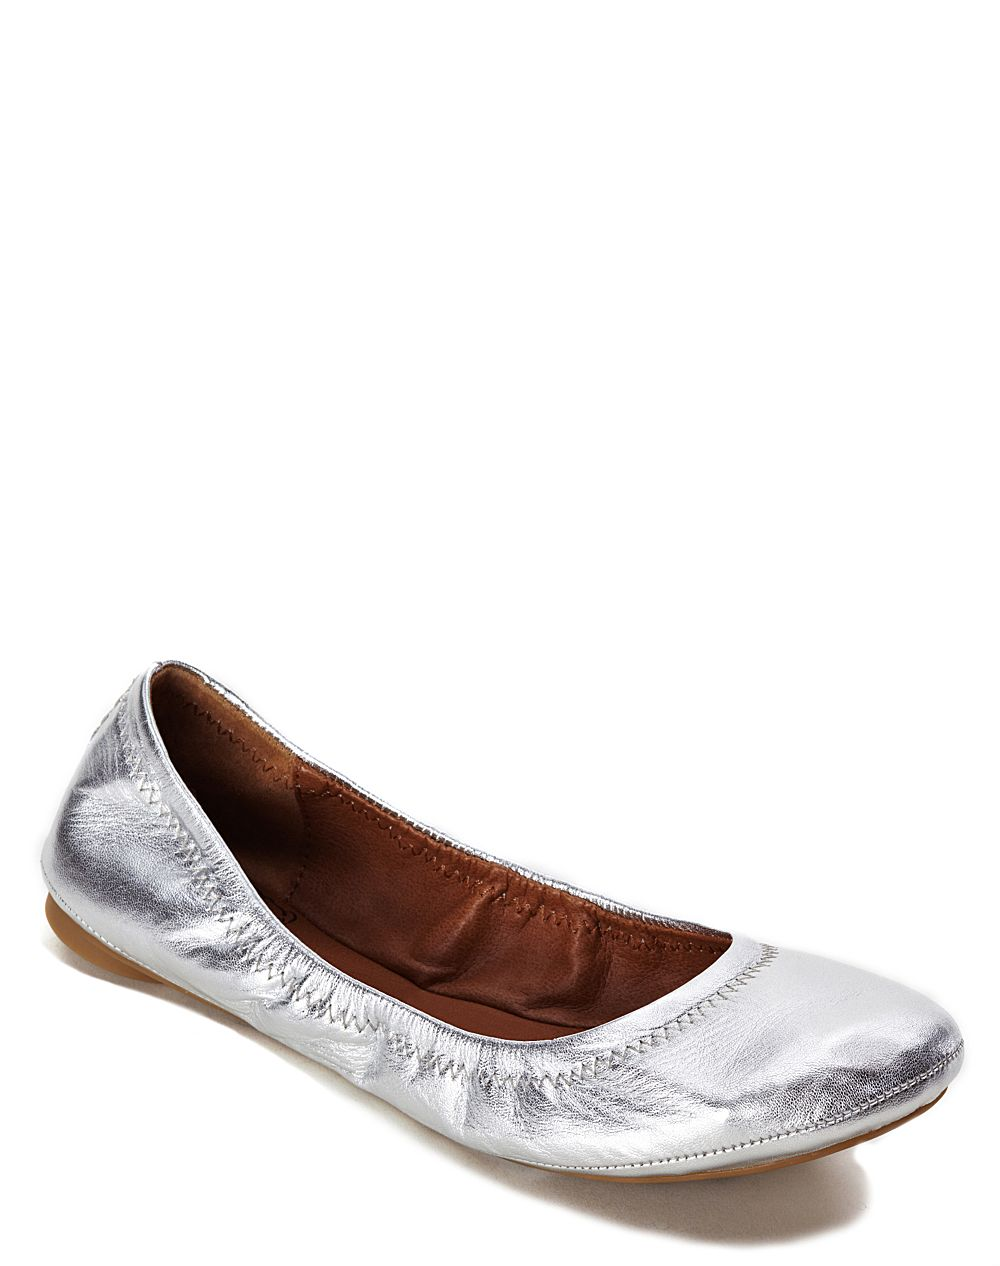 Lucky Brand Women's Emmie Ballet Flat. by Lucky Brand. $ - $ $ 16 $ 64 90 Prime. Save $ at checkout. FREE Shipping on eligible orders. Classic ballet flat with flexible, supportive sole and cushioned footbed. Bella Marie Angie Women's Classic Pointy Toe Ballet Slip On Flats Shoes. by Bella Marie.